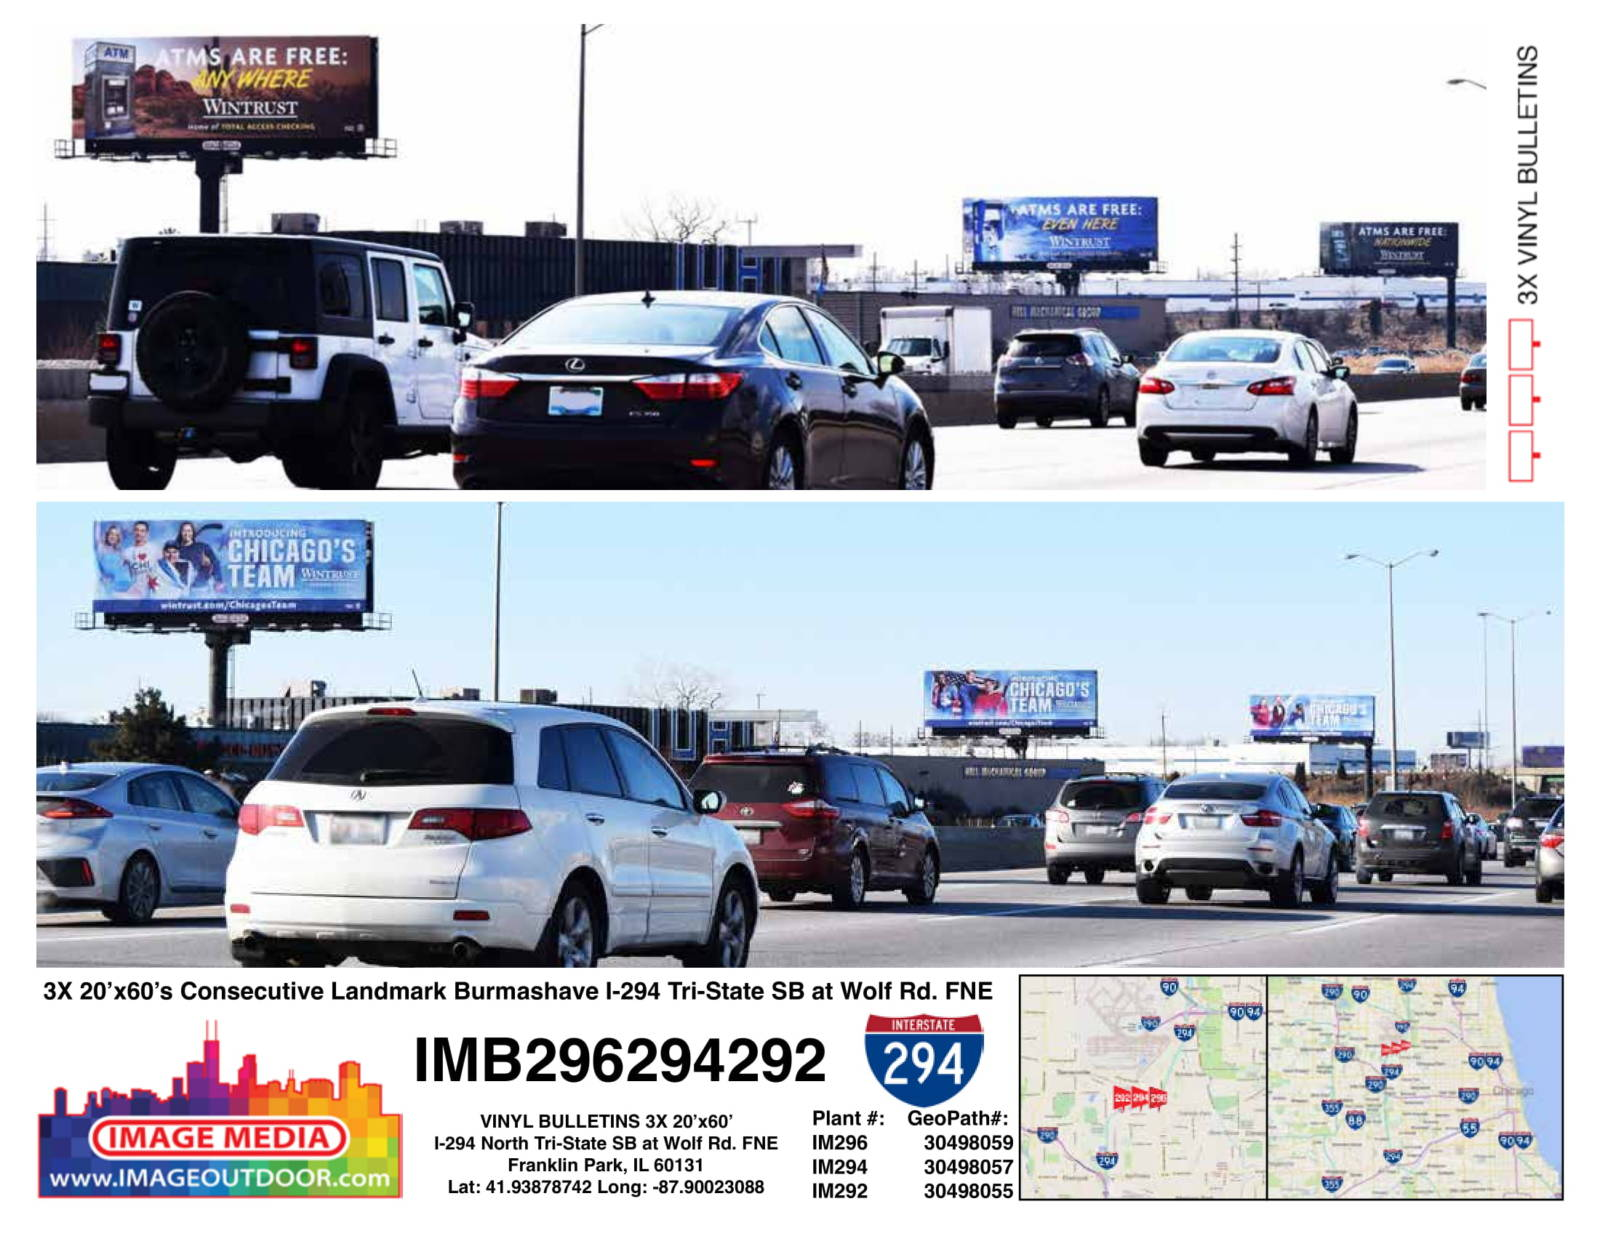 IMB296294292 - consecutive landmark burmashave on I-294 southbound